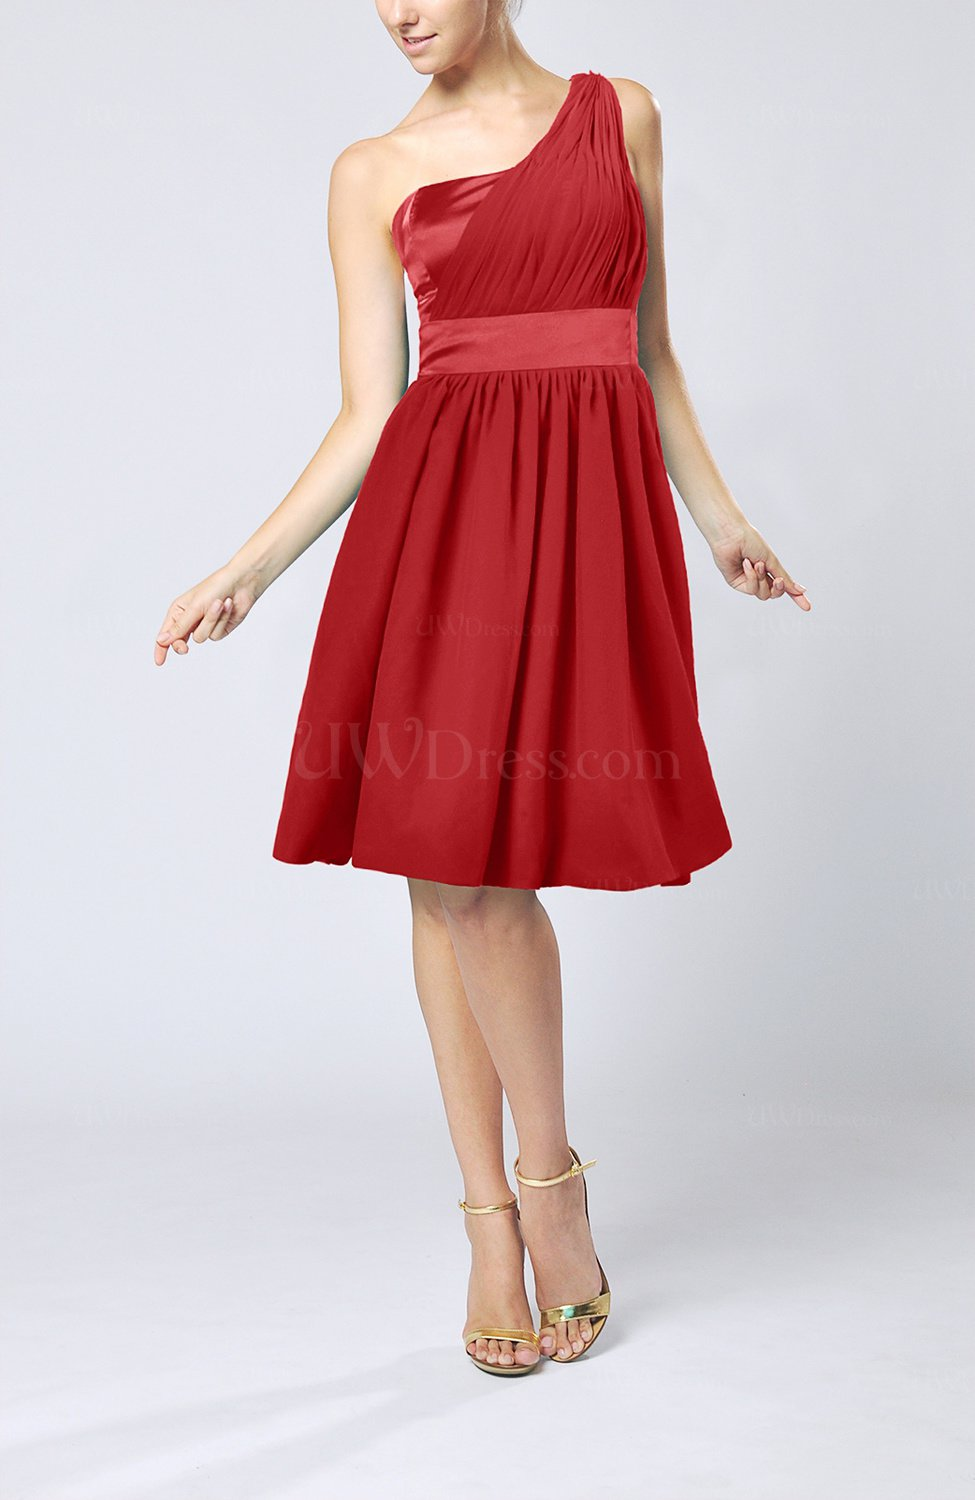 5841f642a2ad5 Red Modern A-line One Shoulder Sleeveless Chiffon Bridesmaid Dresses ...